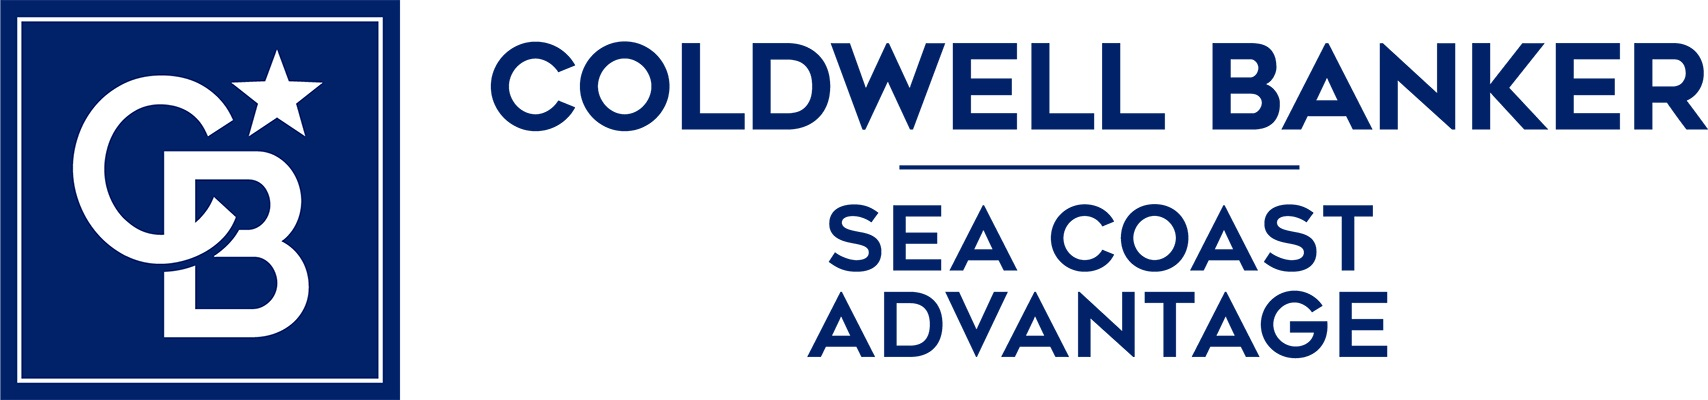 Brian Moxey - Coldwell Banker Sea Coast Advantage Realty